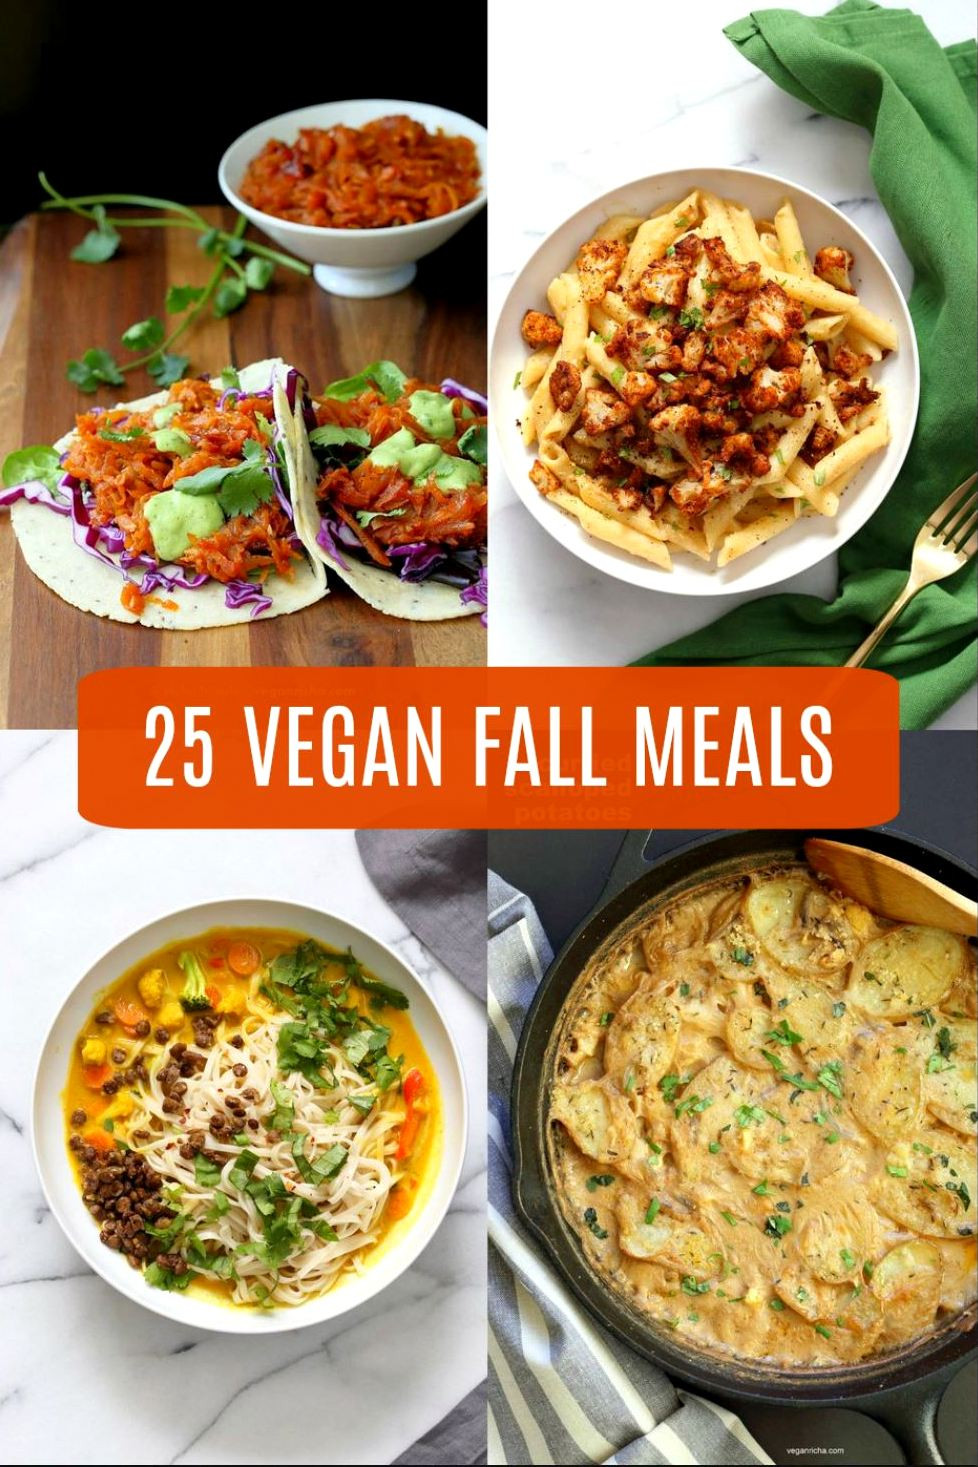 Fall Vegetarian Recipes  25 Vegan Fall Meals for a chilly day 1 Pot Gluten free